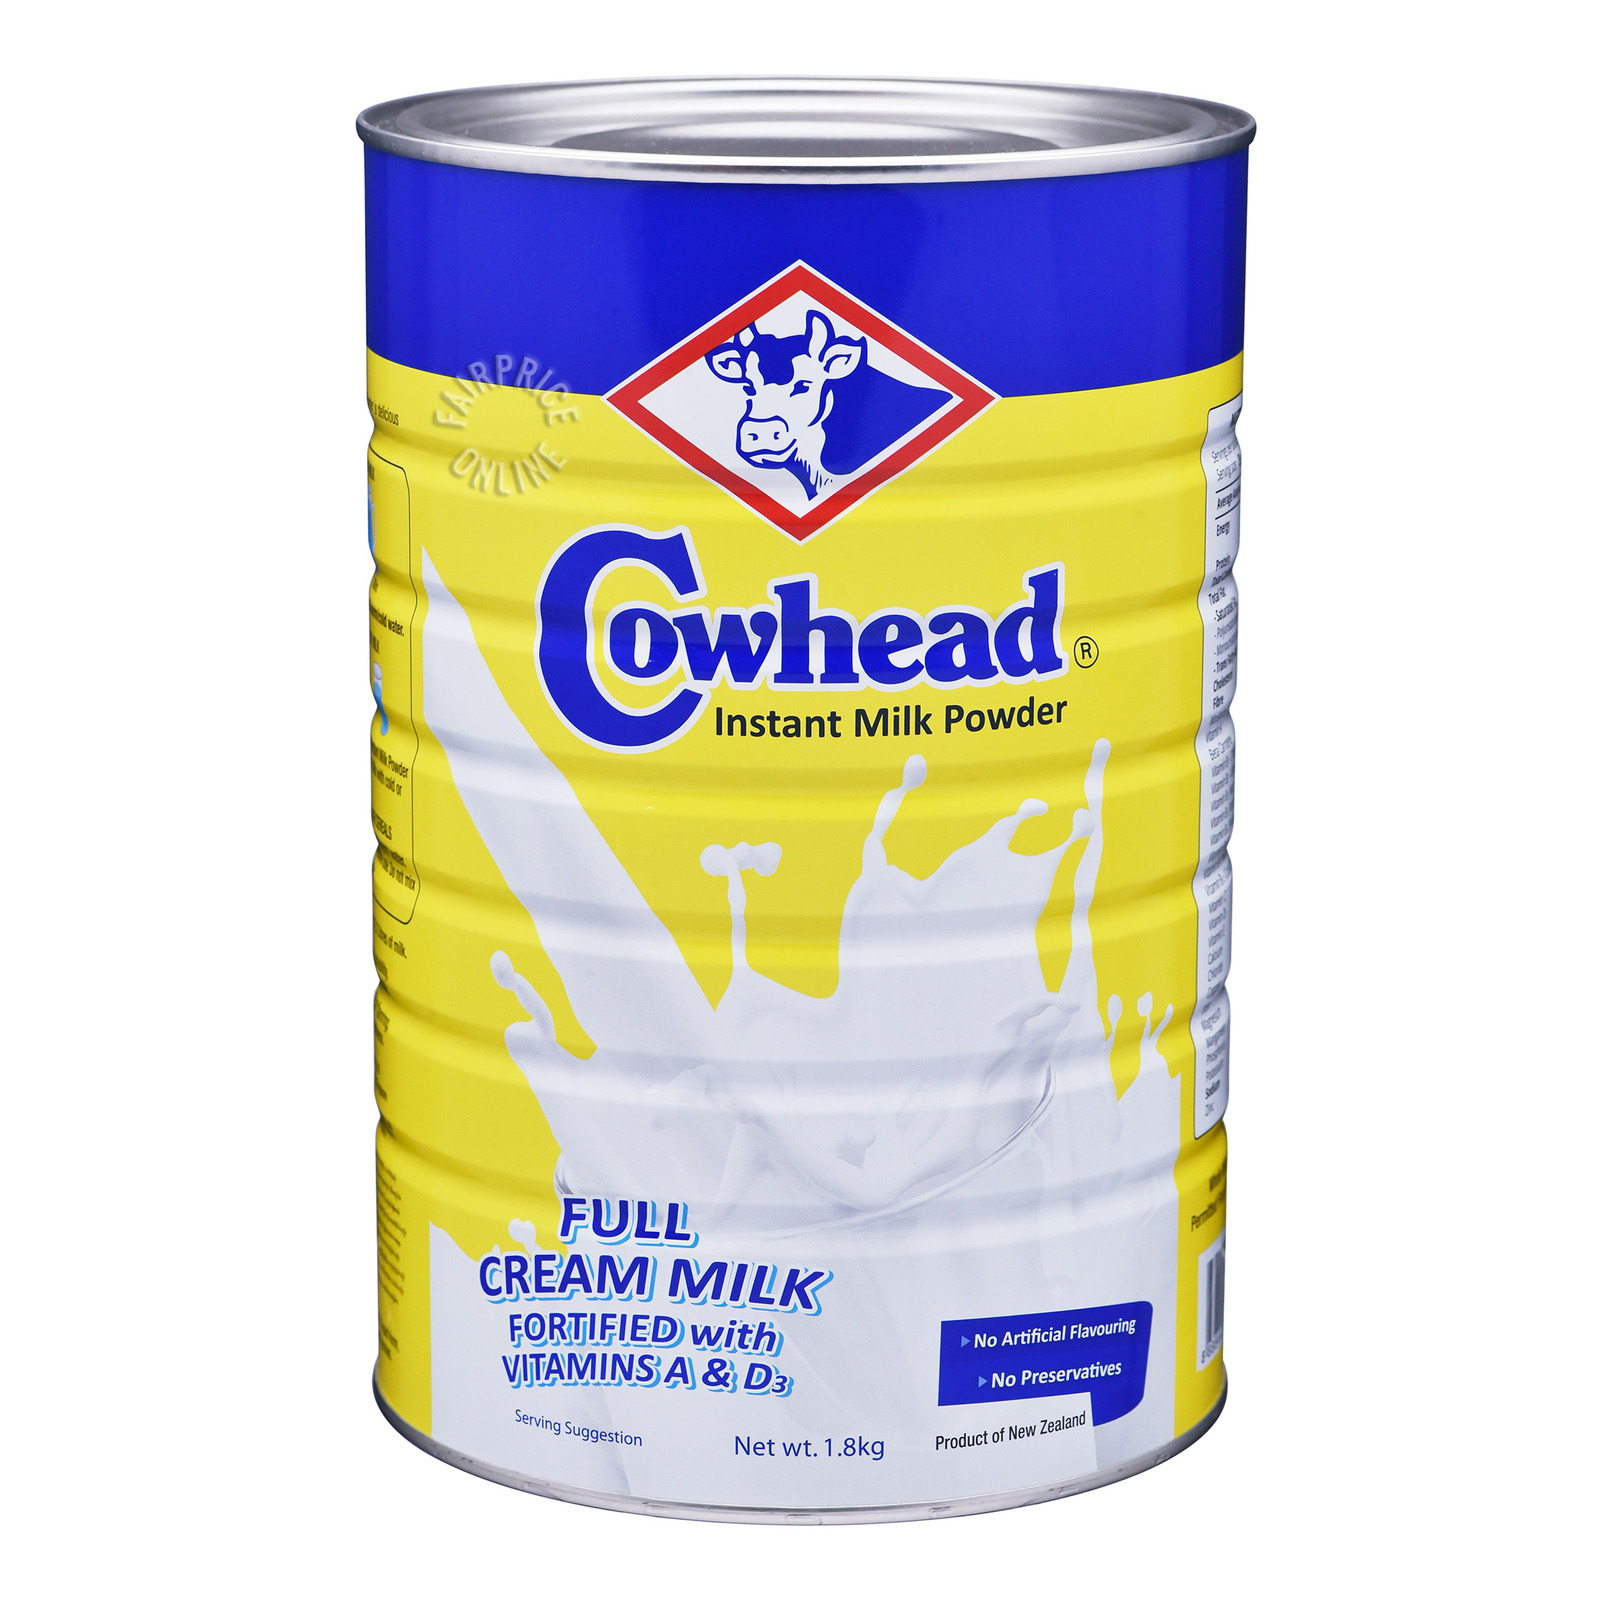 Cowhead Instant Milk Powder - Full Cream